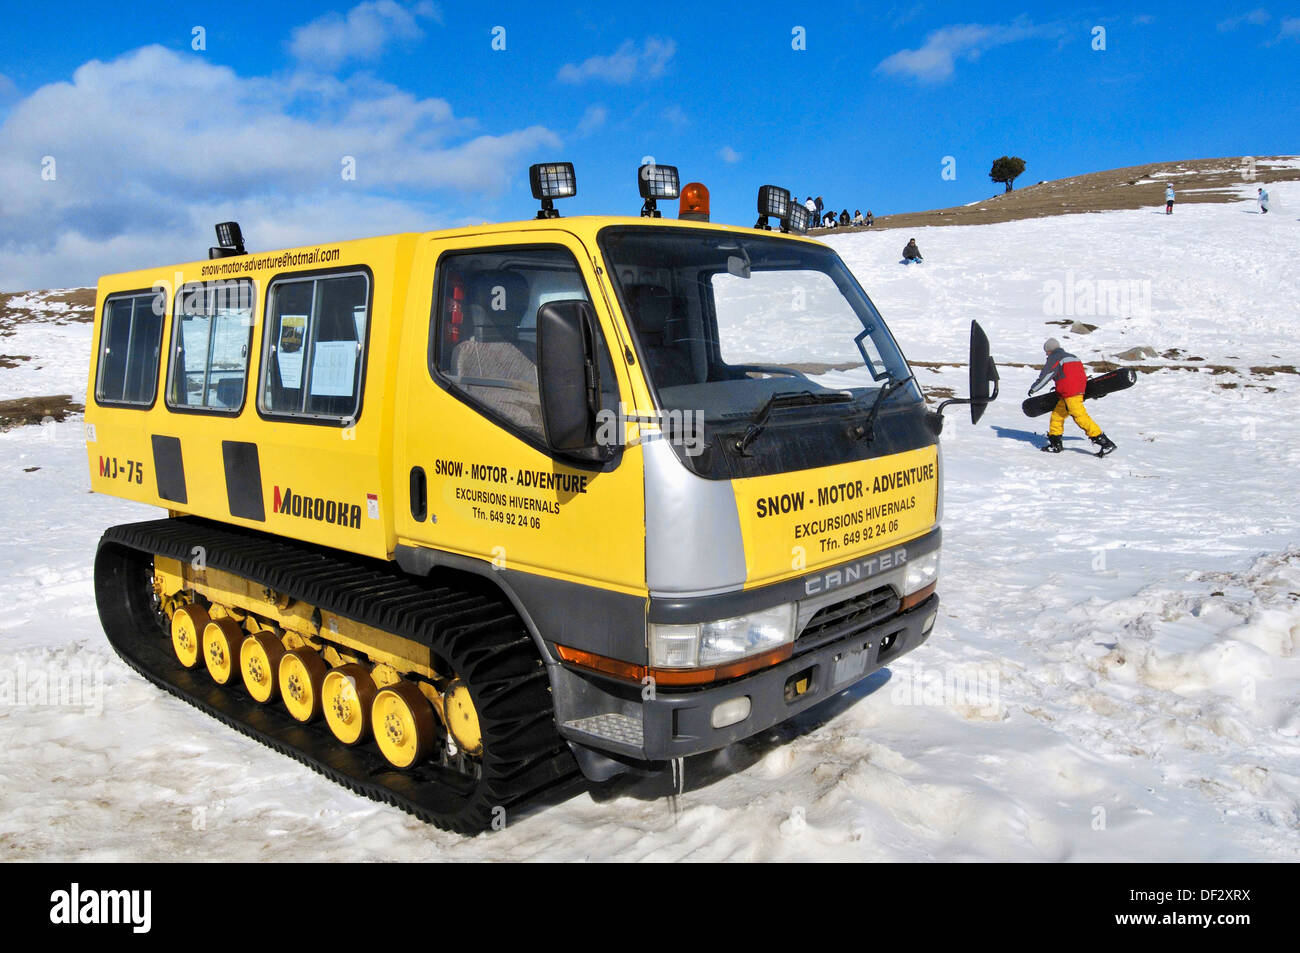 Image result for ski truck